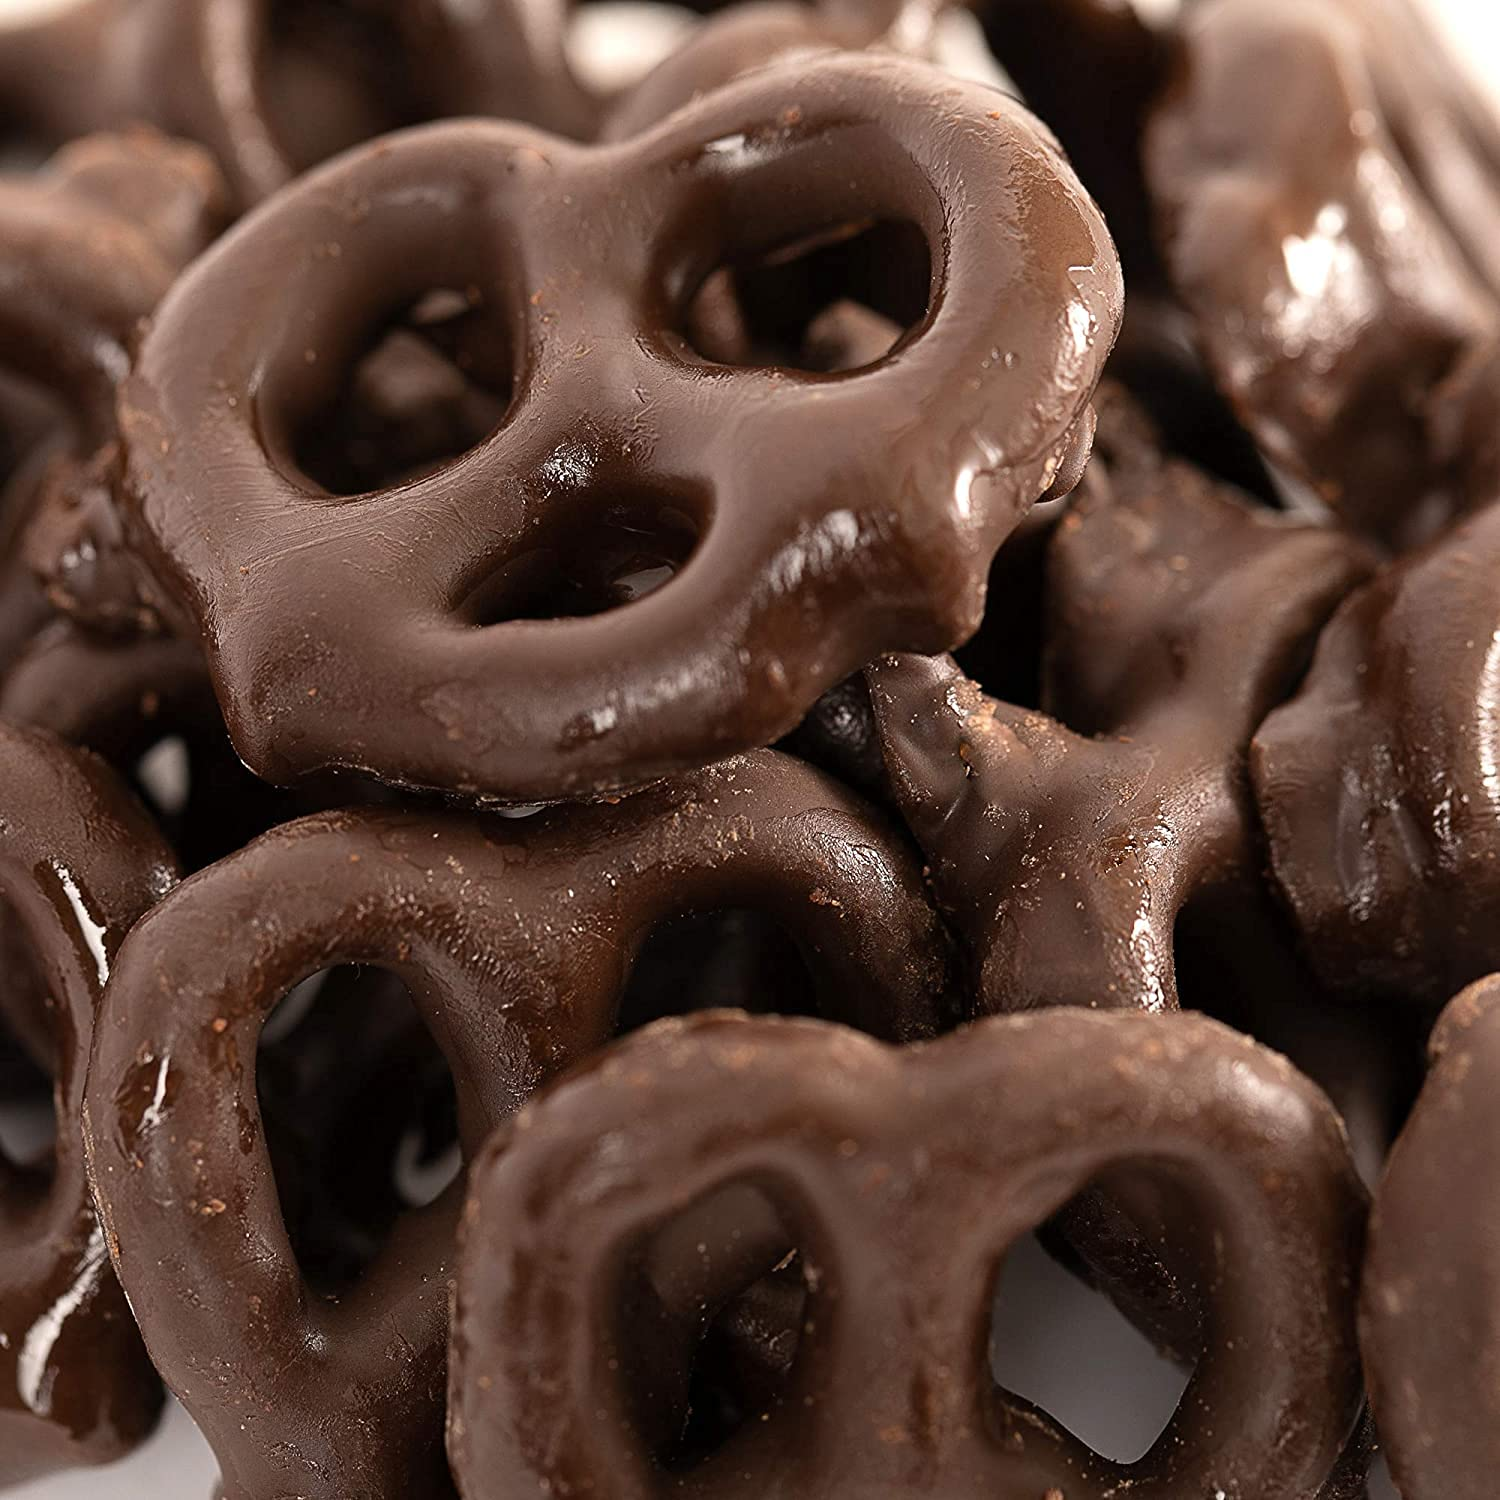 Sales for sale CrazyOutlet Dark Chocolate Covered Recommendation Almond Pretzels Dusted Cocoa